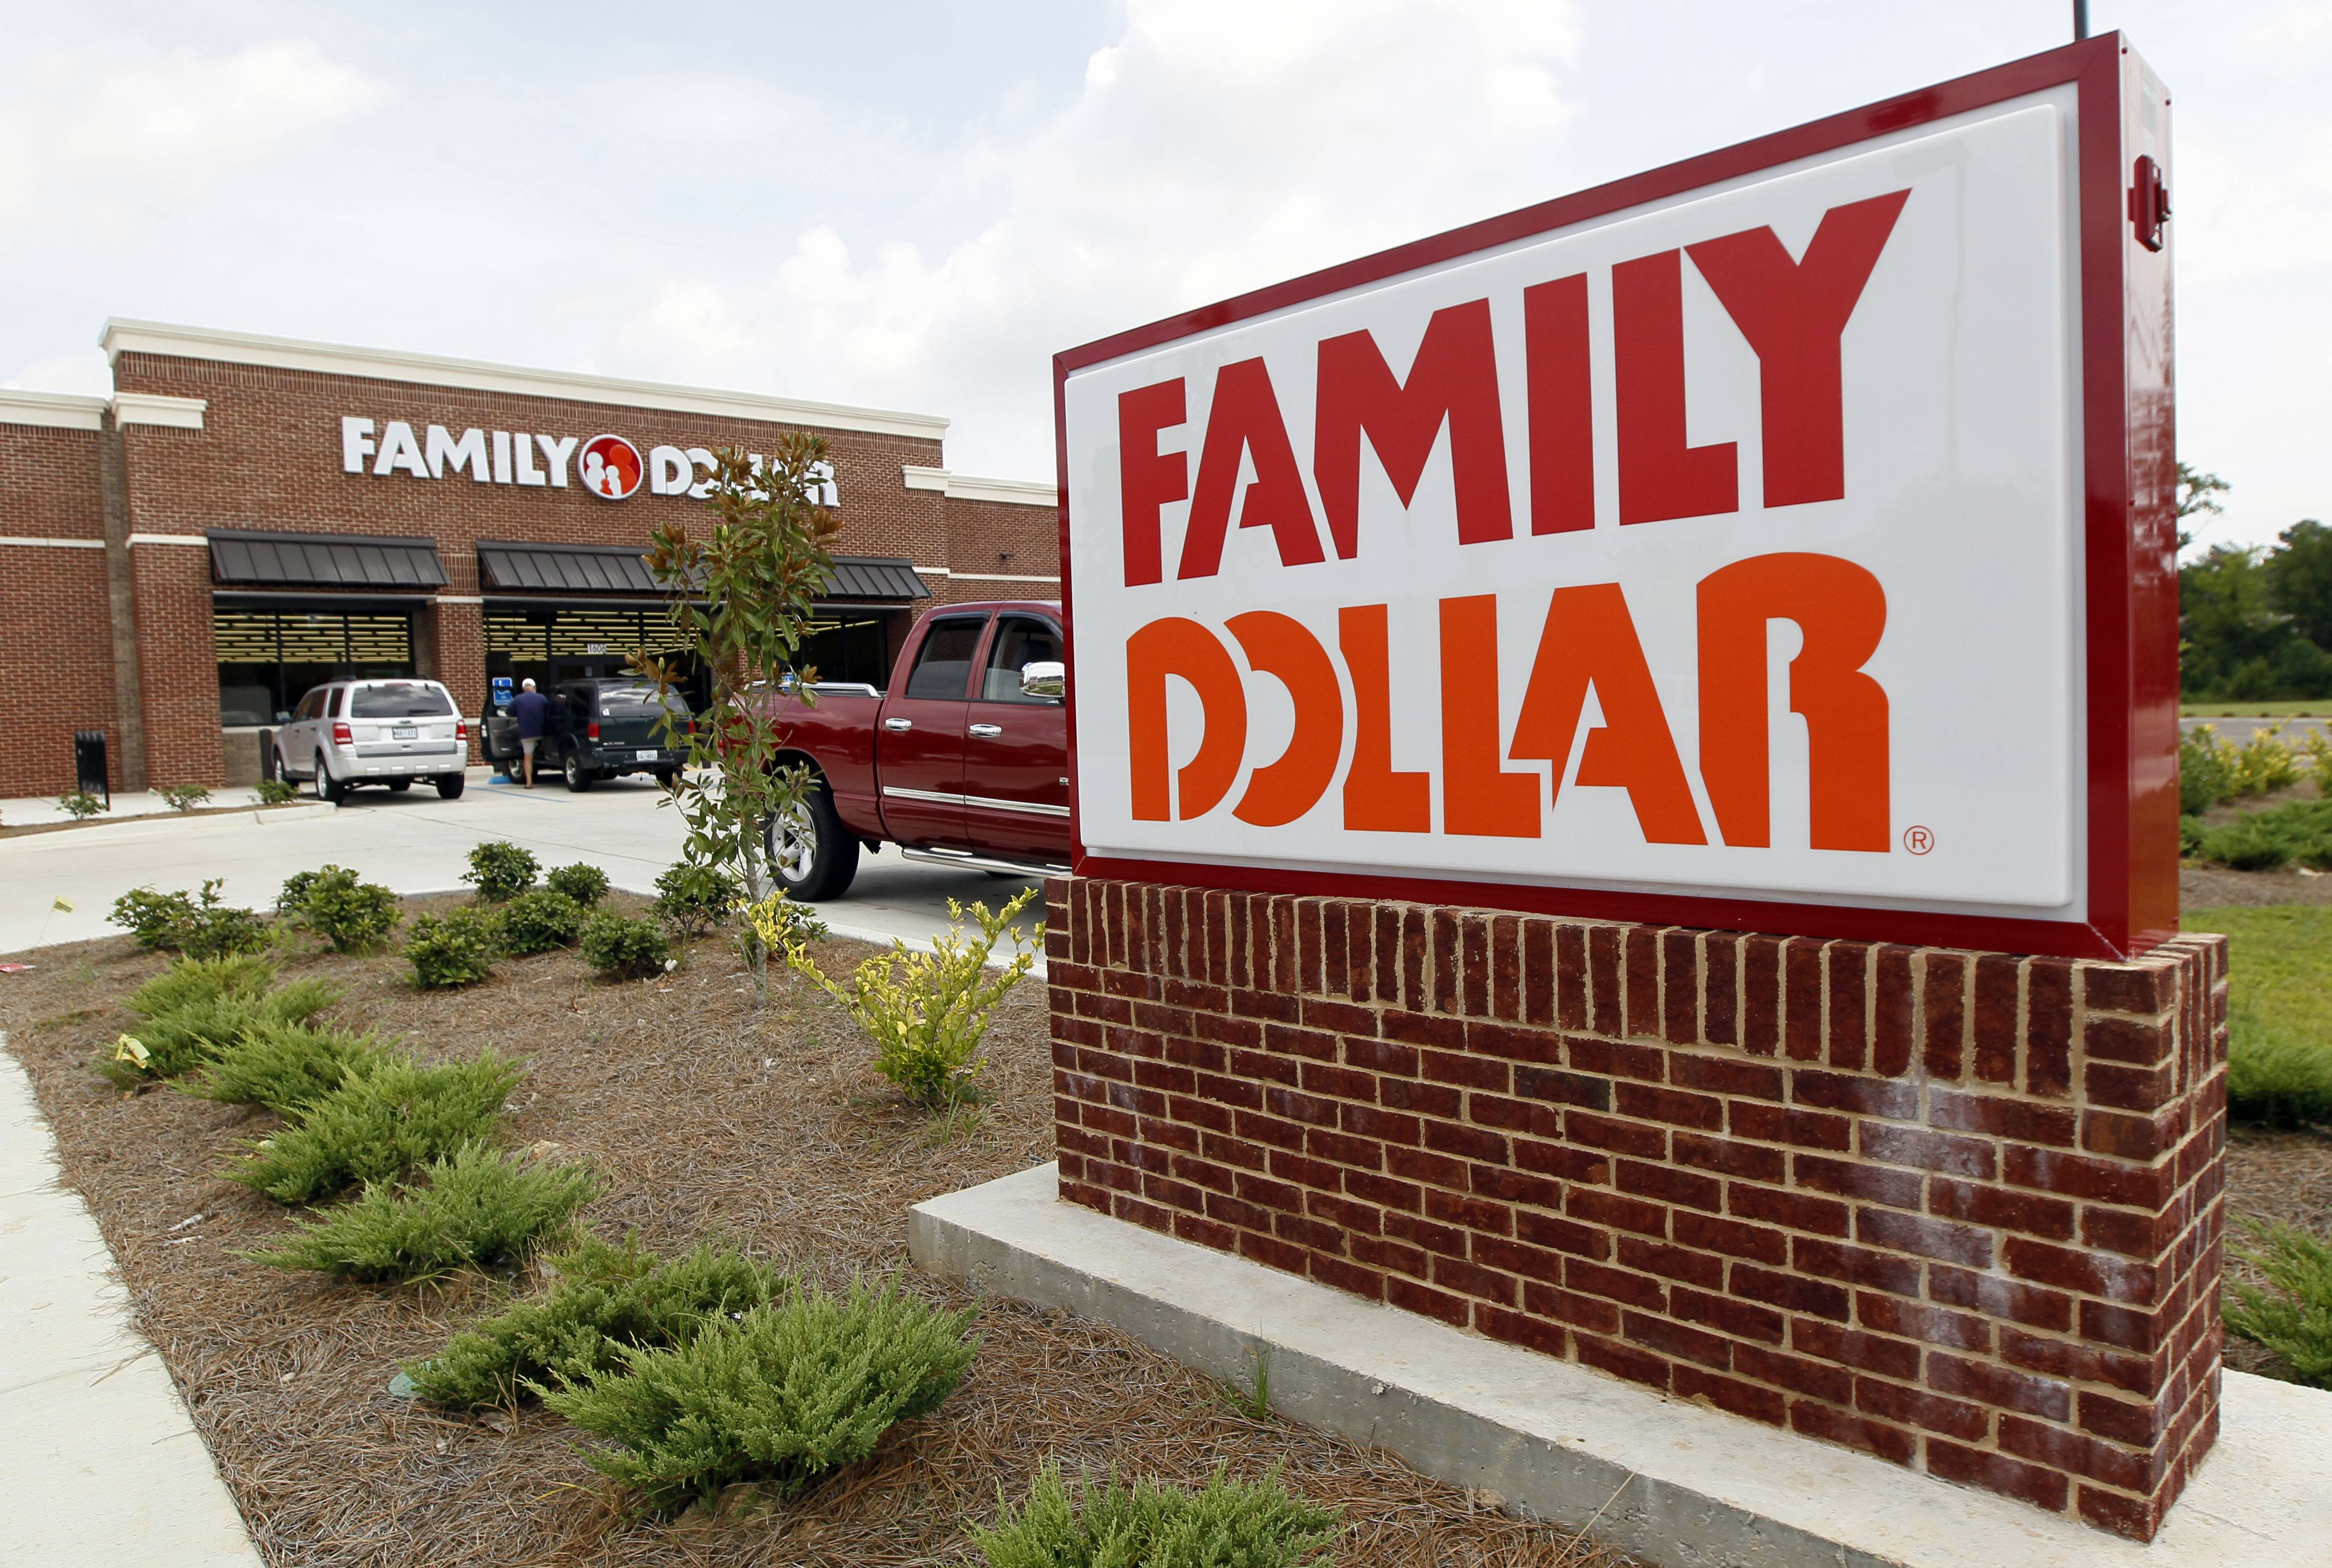 Family Dollar Stores Inc. spurned a $9 billion offer from Dollar General Corp. in favor of a lower bid from Dollar Tree Inc., saying it was concerned the Dollar General deal wouldn't be able to pass antitrust hurdles.